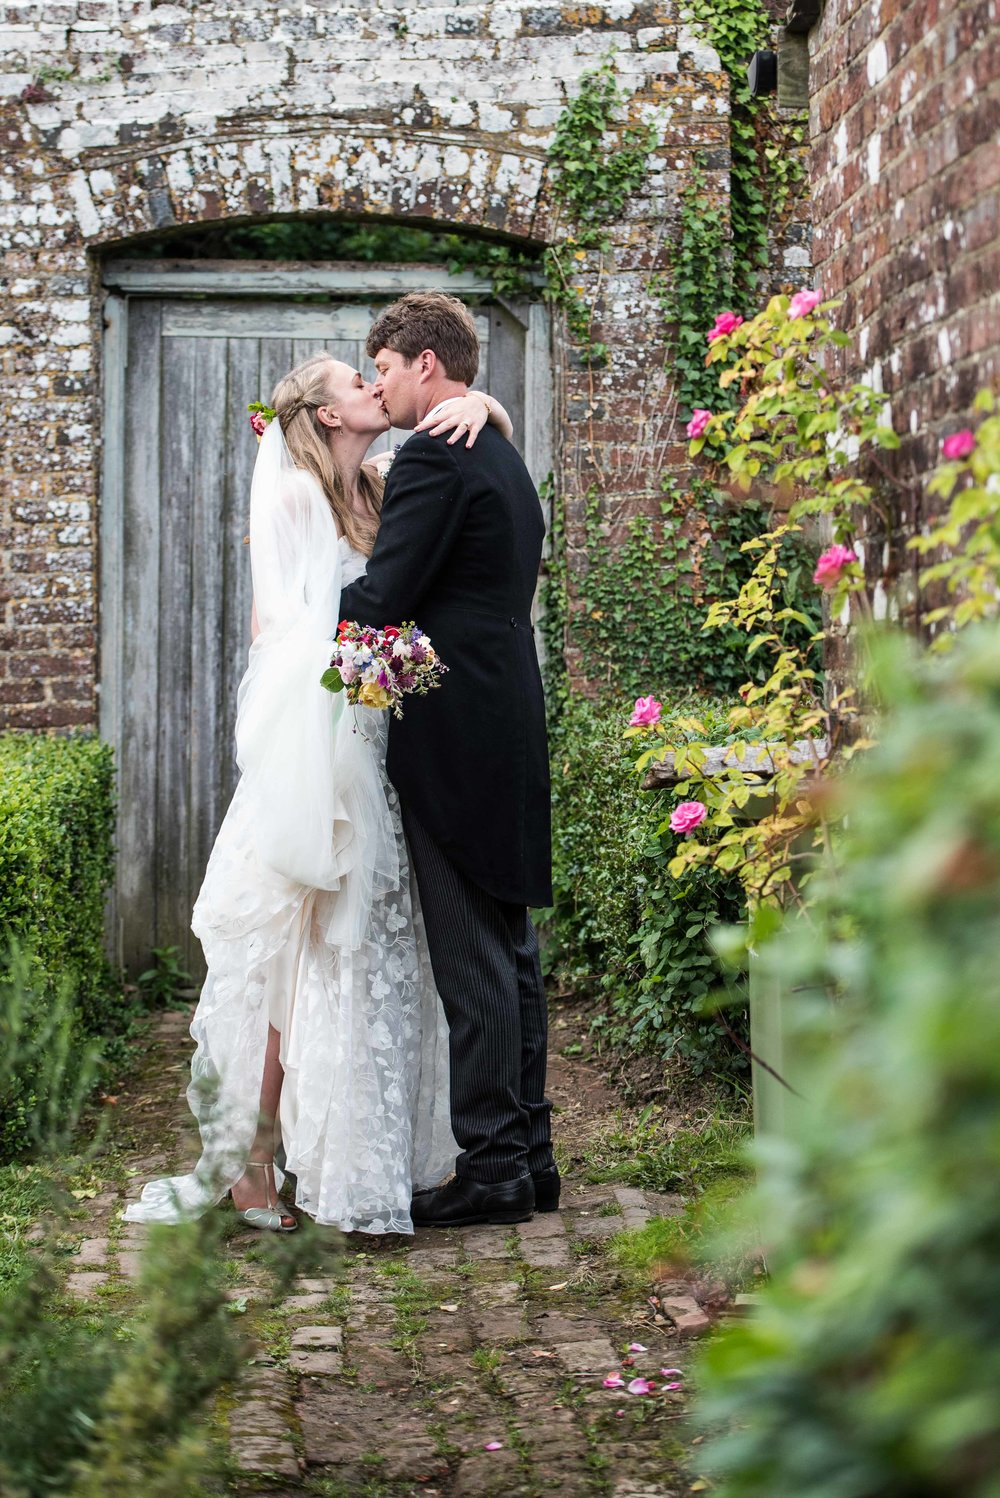 Frances & Luke   Herefordshire Family Farm Wedding